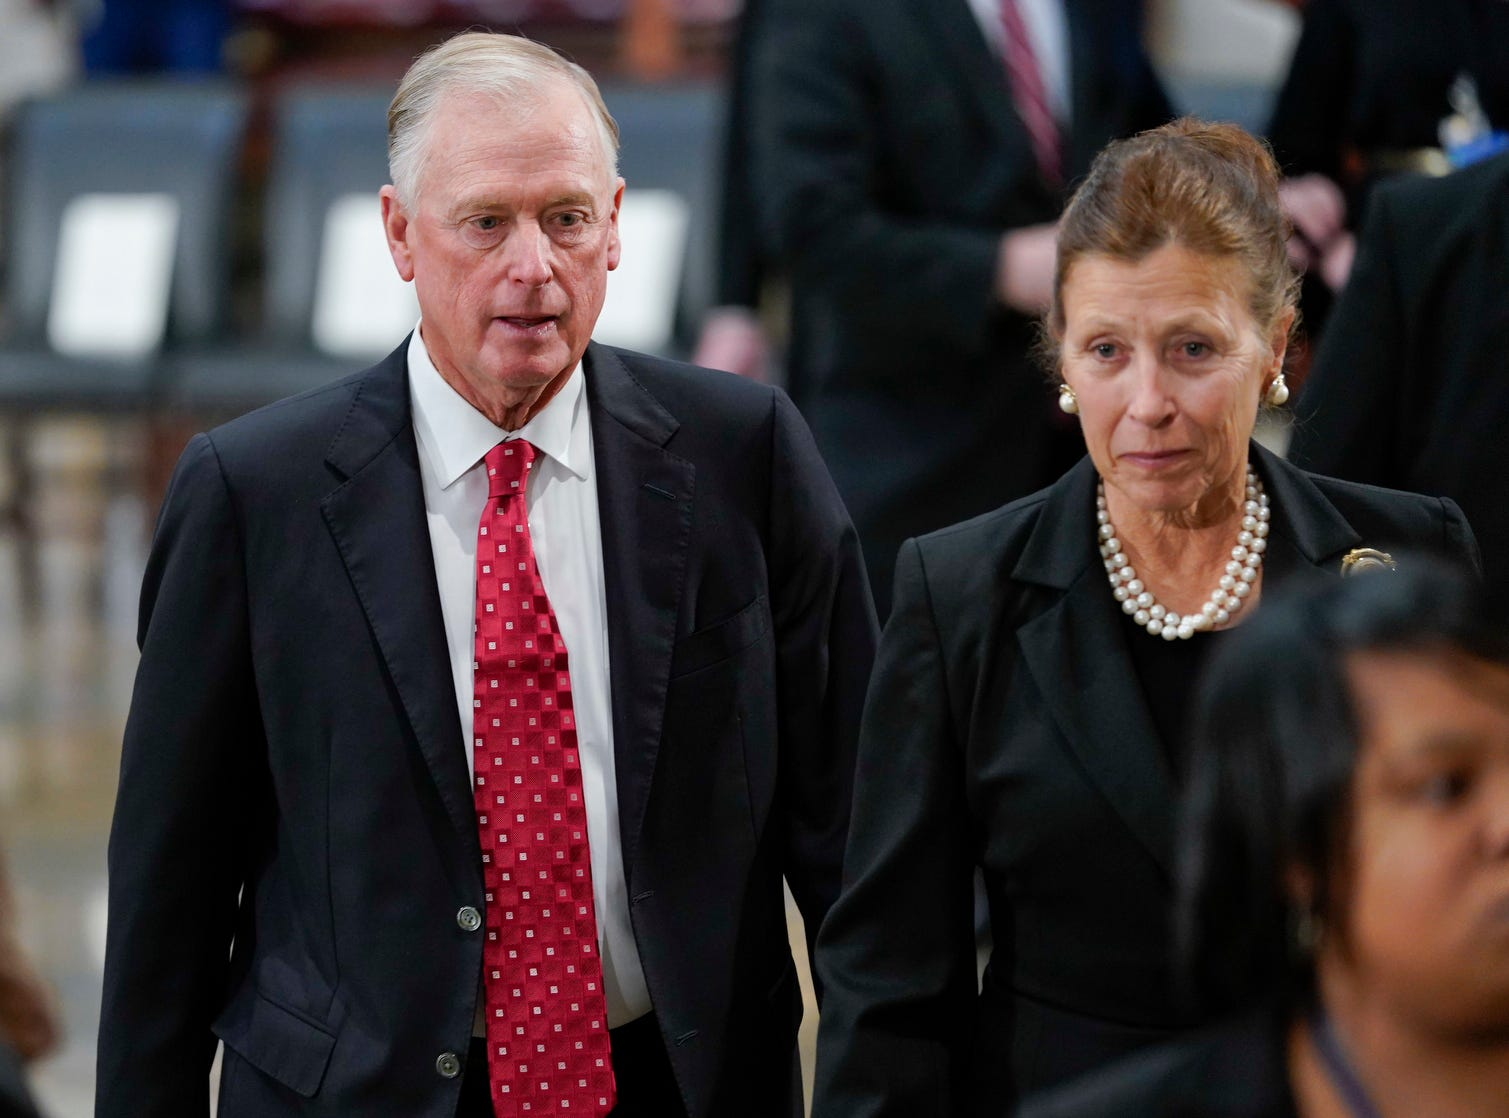 Former Vice President Dan Quayle and his wife Marilyn arrive at the Capitol in Washington to attend services of former President George H.W. Bush, Monday.